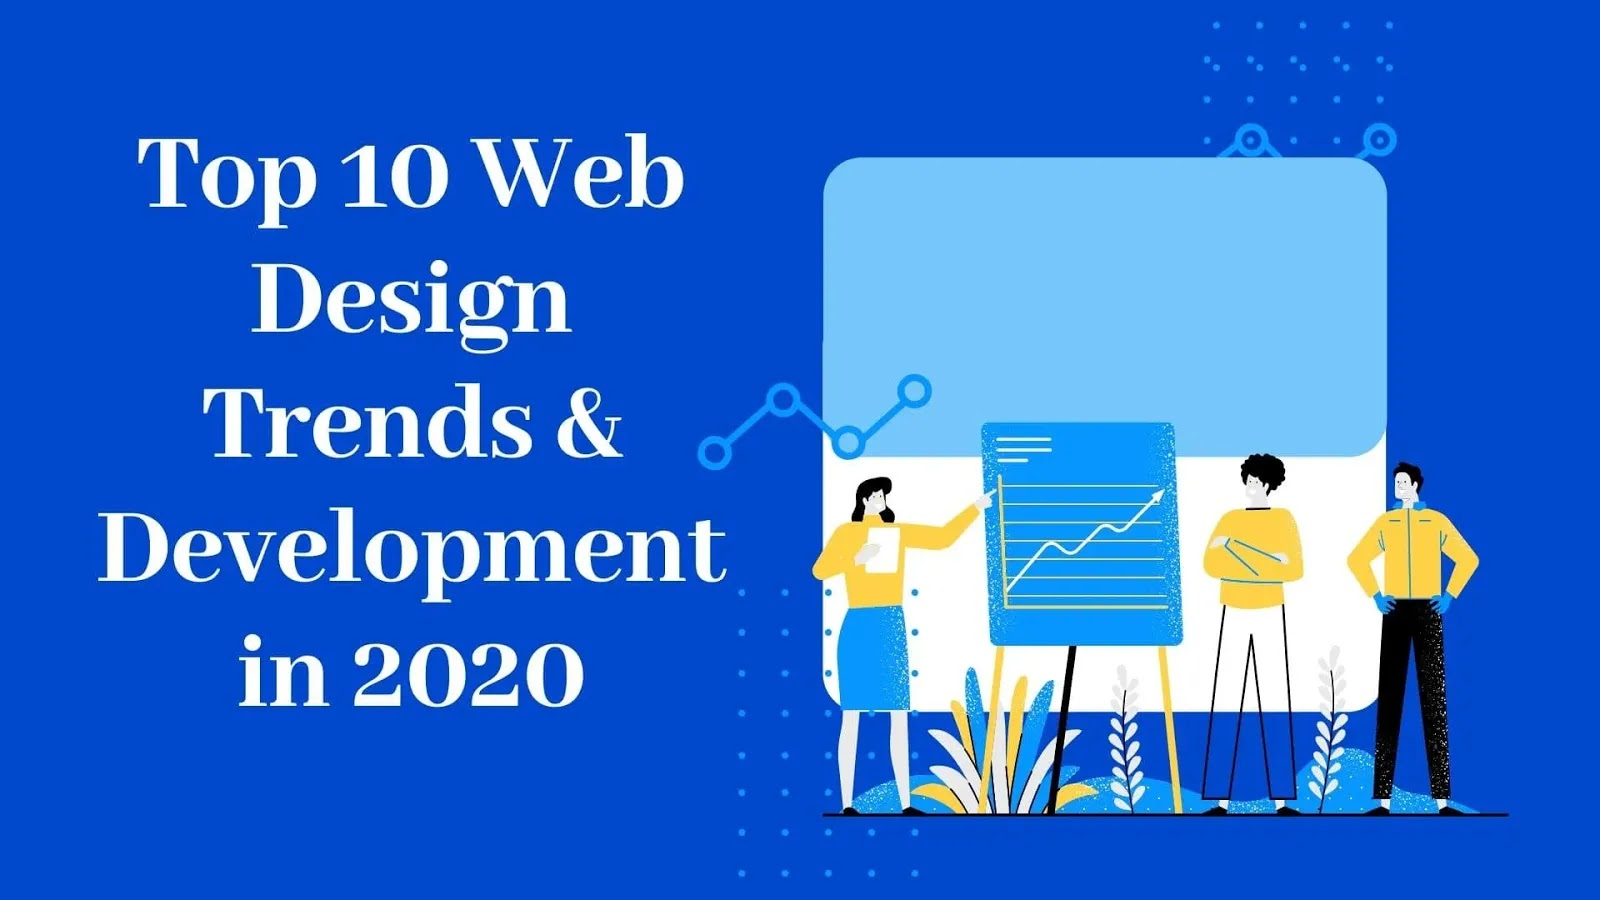 Web Design Trends and Web Development